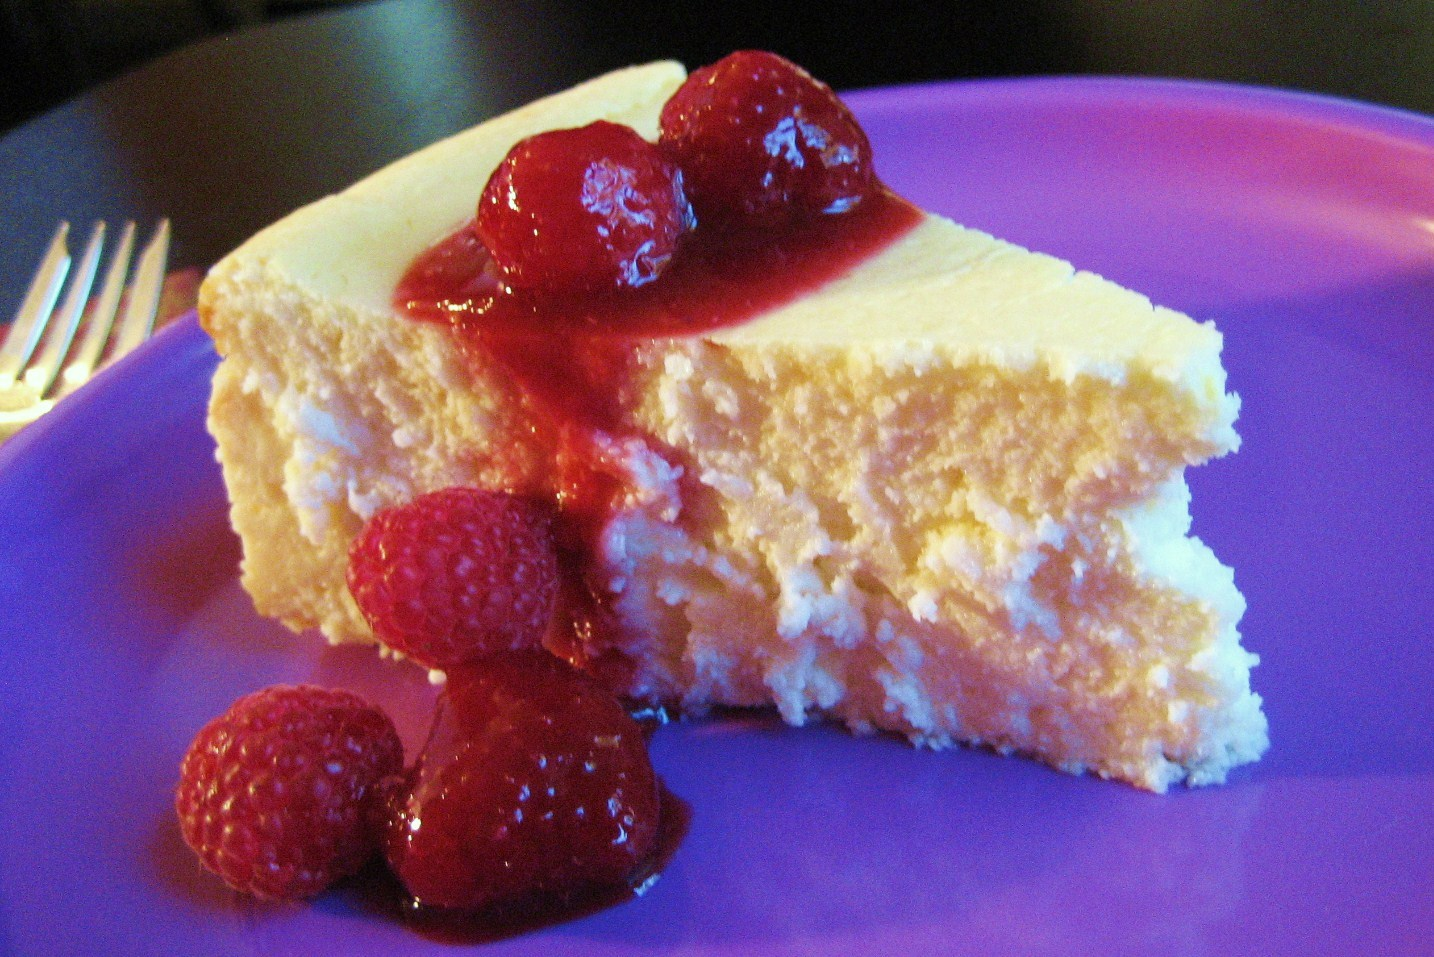 ... italian cheesecake to the sometimes unctuous new york cheesecake the